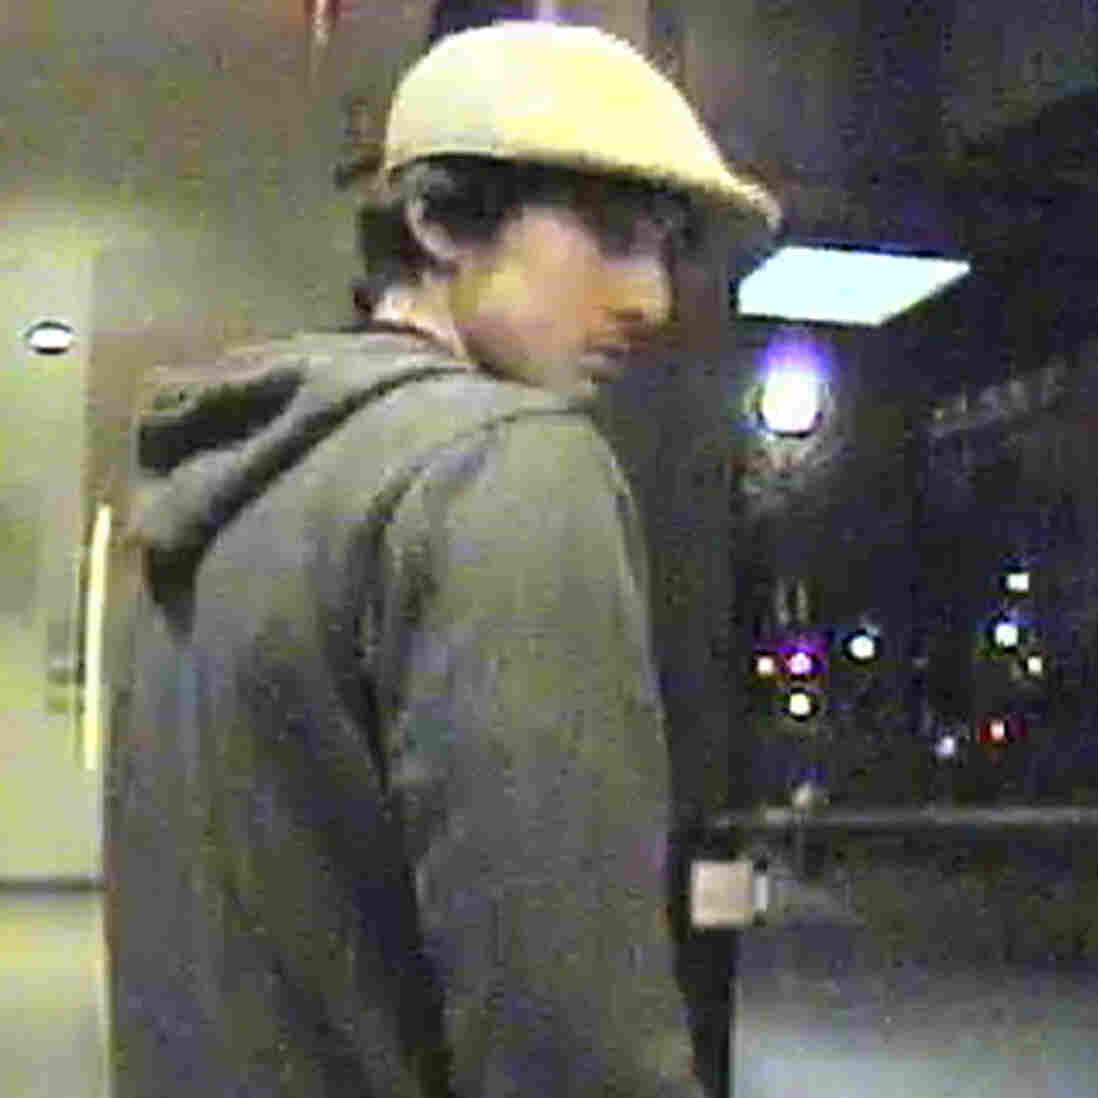 A still image from surveillance video that was entered as evidence shows Boston Marathon bombing suspect Dzhokhar Tsarnaev in 2013, in a handout photo provided by the U.S. Attorney's Office in Boston. Tsarnaev, 21, is accused of killing three people and injuring 264 with a pair of homemade bombs at the race's crowded finish, as well as fatally shooting a police officer three days later.